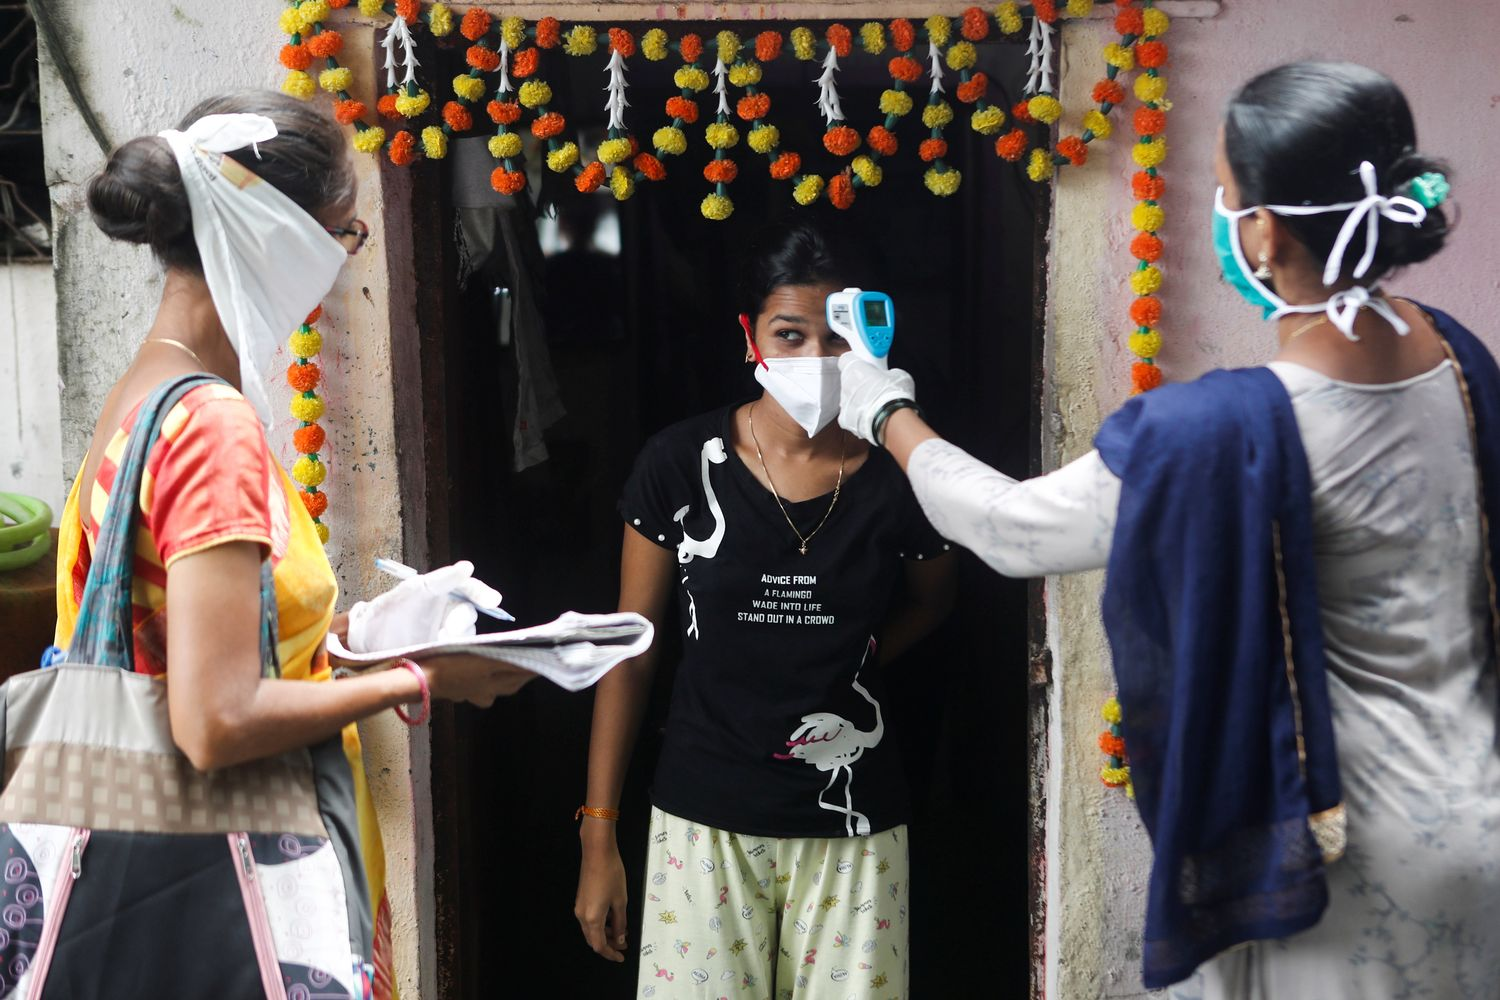 Community health volunteers check the temperature of a girl at a slum area during a checkup campaign for the Covid-19 disease in Mumbai on Wednesday. (Reuters photo)